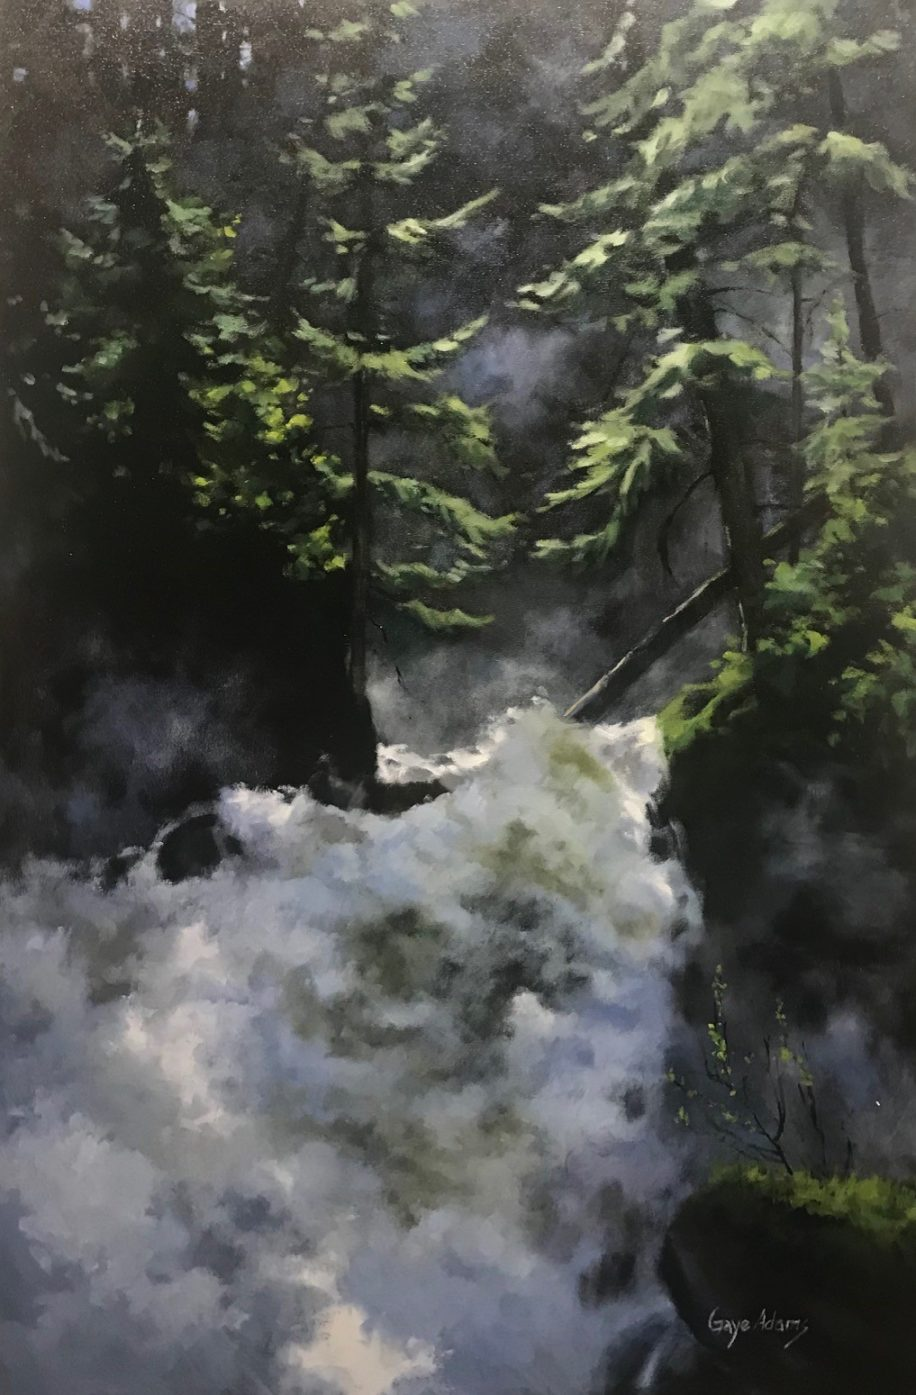 Roiling Runoff by Gaye Adams at The Avenue Gallery, a contemporary fine art gallery in Victoria, BC, Canada.